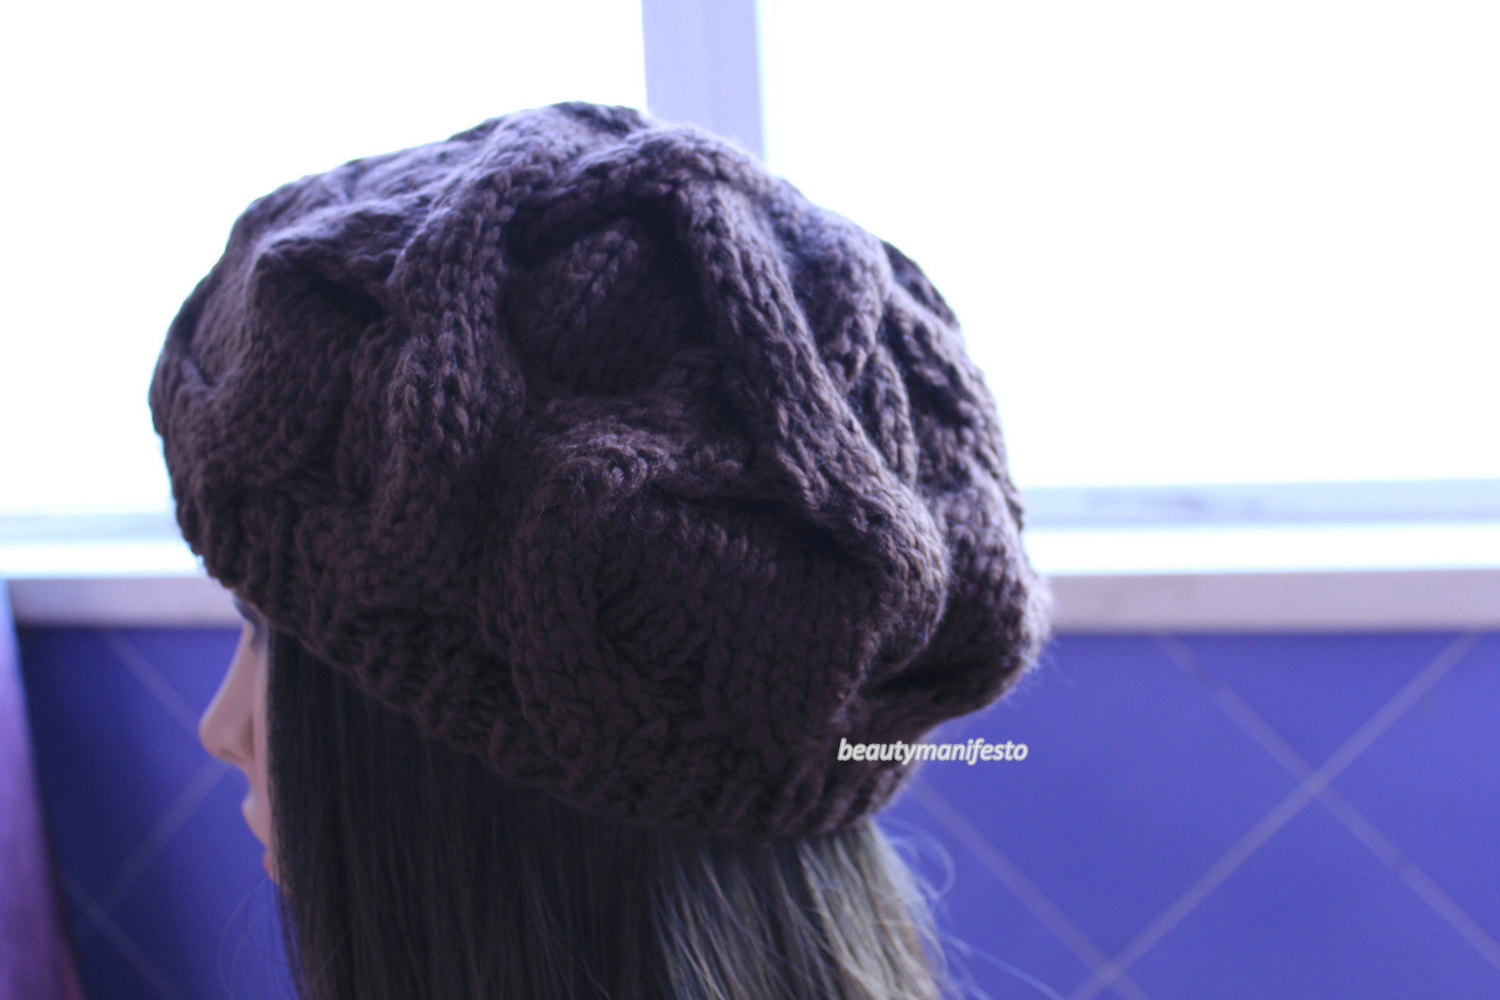 Oversized hat in barley brown chocolate